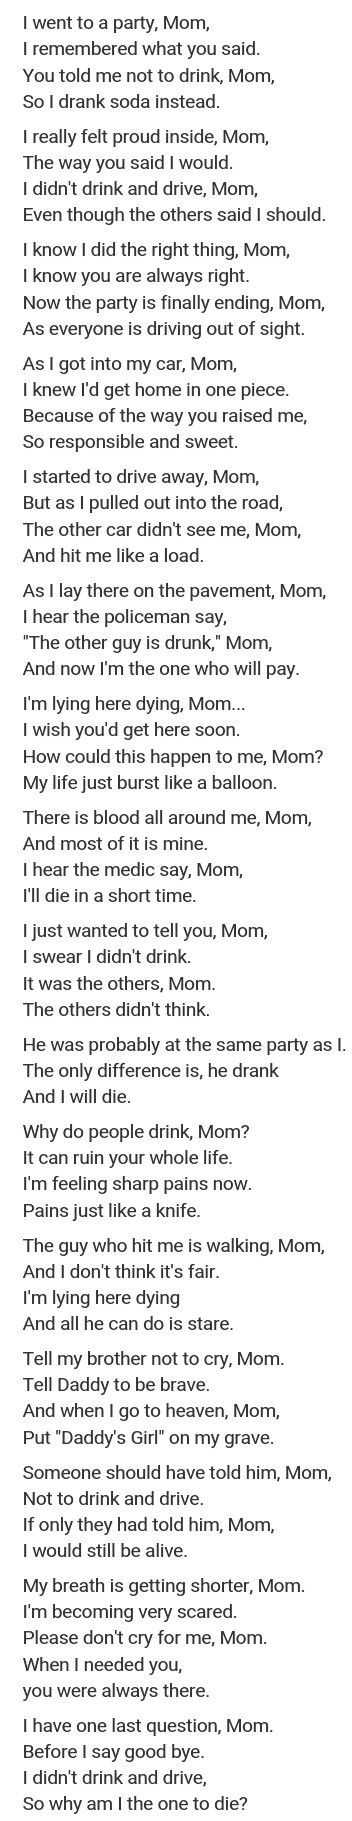 Please don't drink and drive..